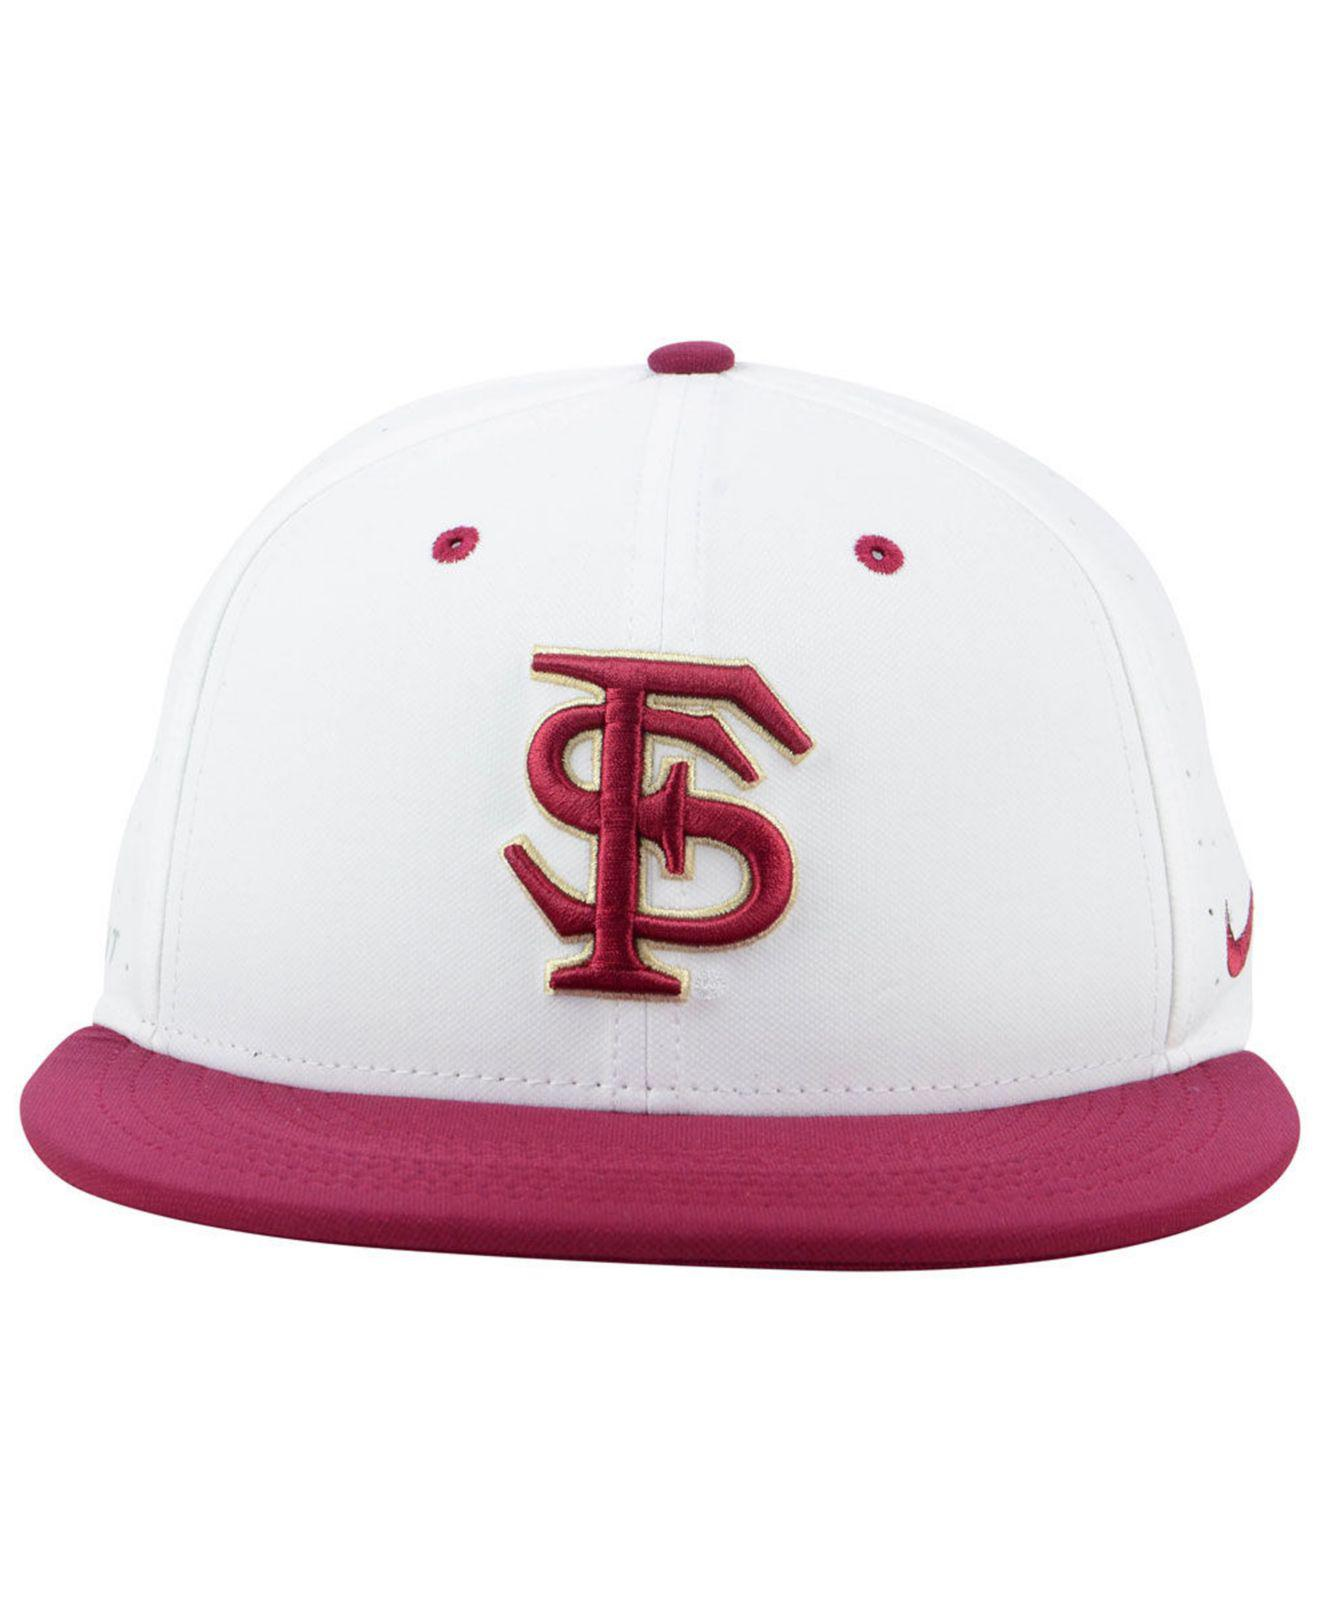 new product aa80a c7914 ... uk lyst nike florida state seminoles aerobill true fitted baseball cap  in white for men c8e59